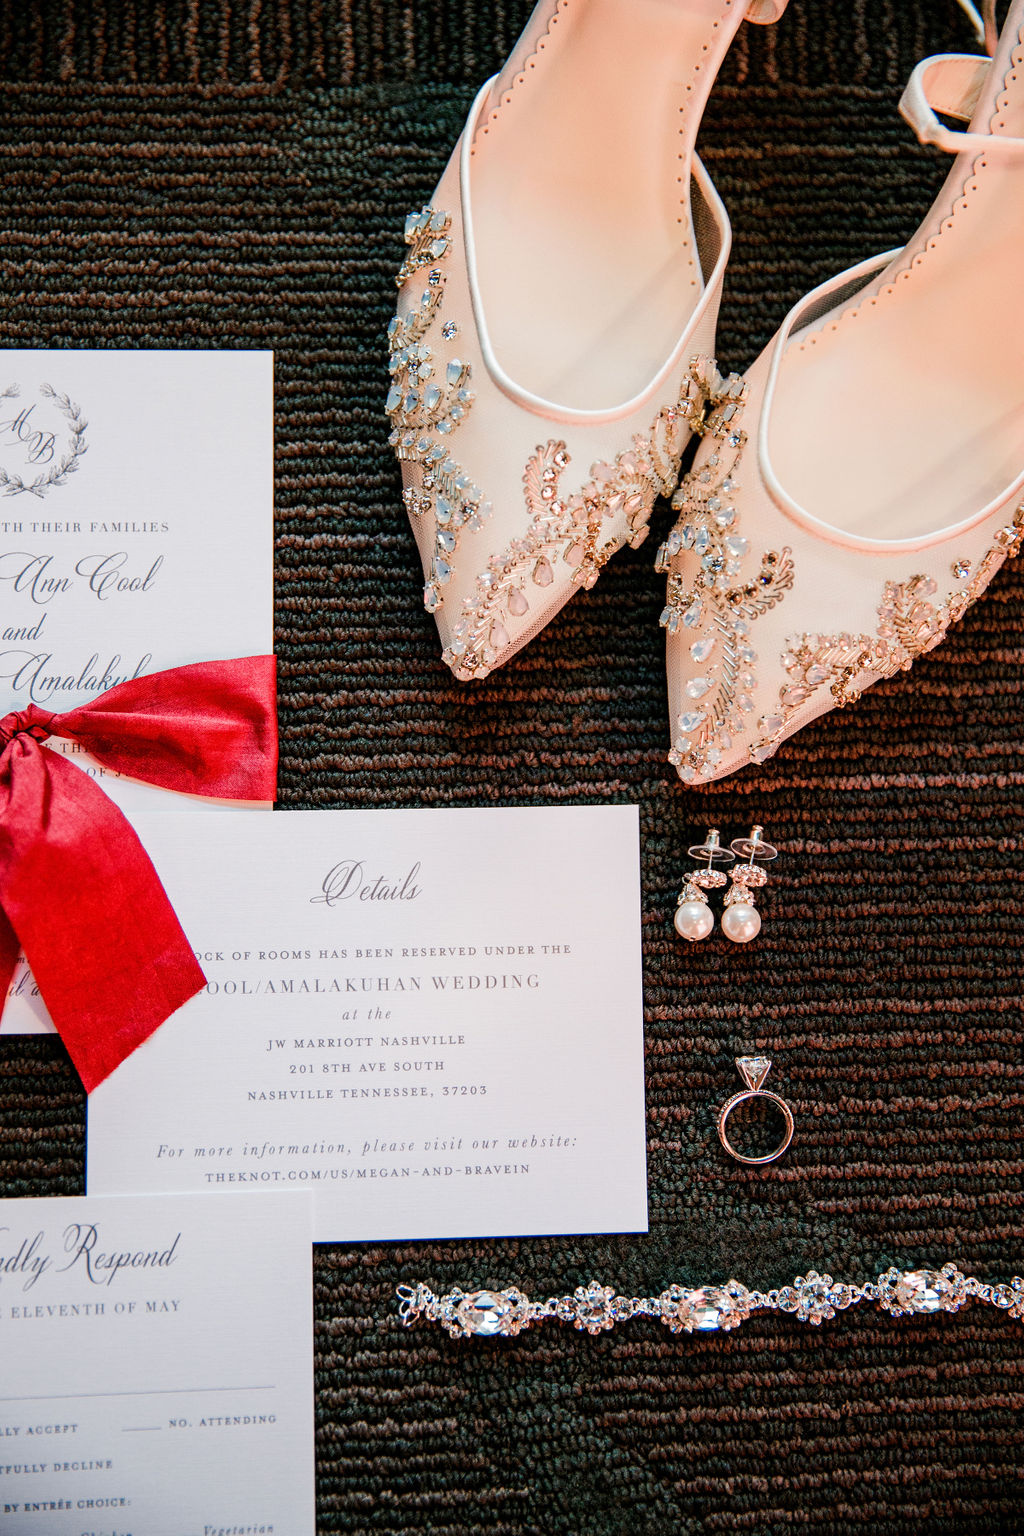 Bridal Shoes and Wedding Stationery: Bollywood Meets Traditional Wedding at The Bridge Building